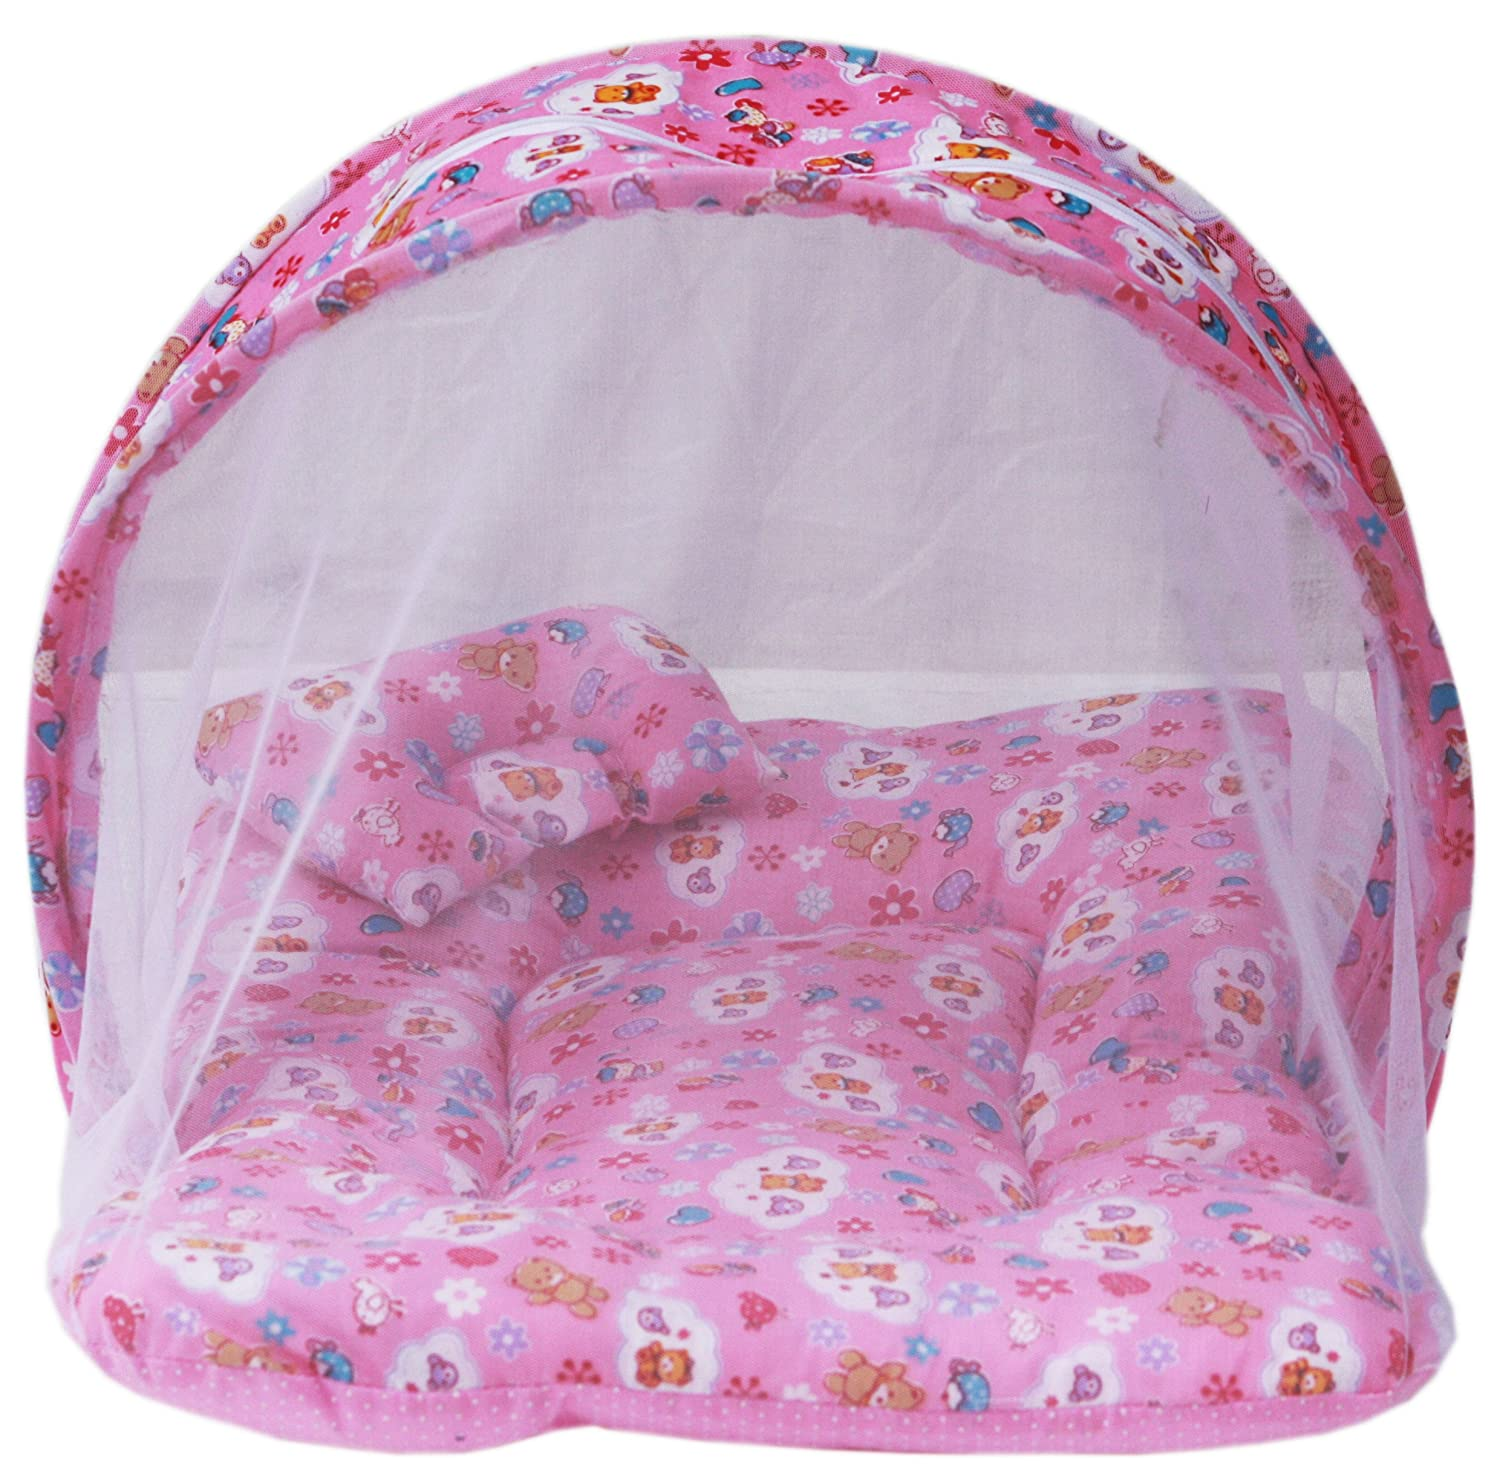 Baby Mattress with Mosquito Net on heavenkart